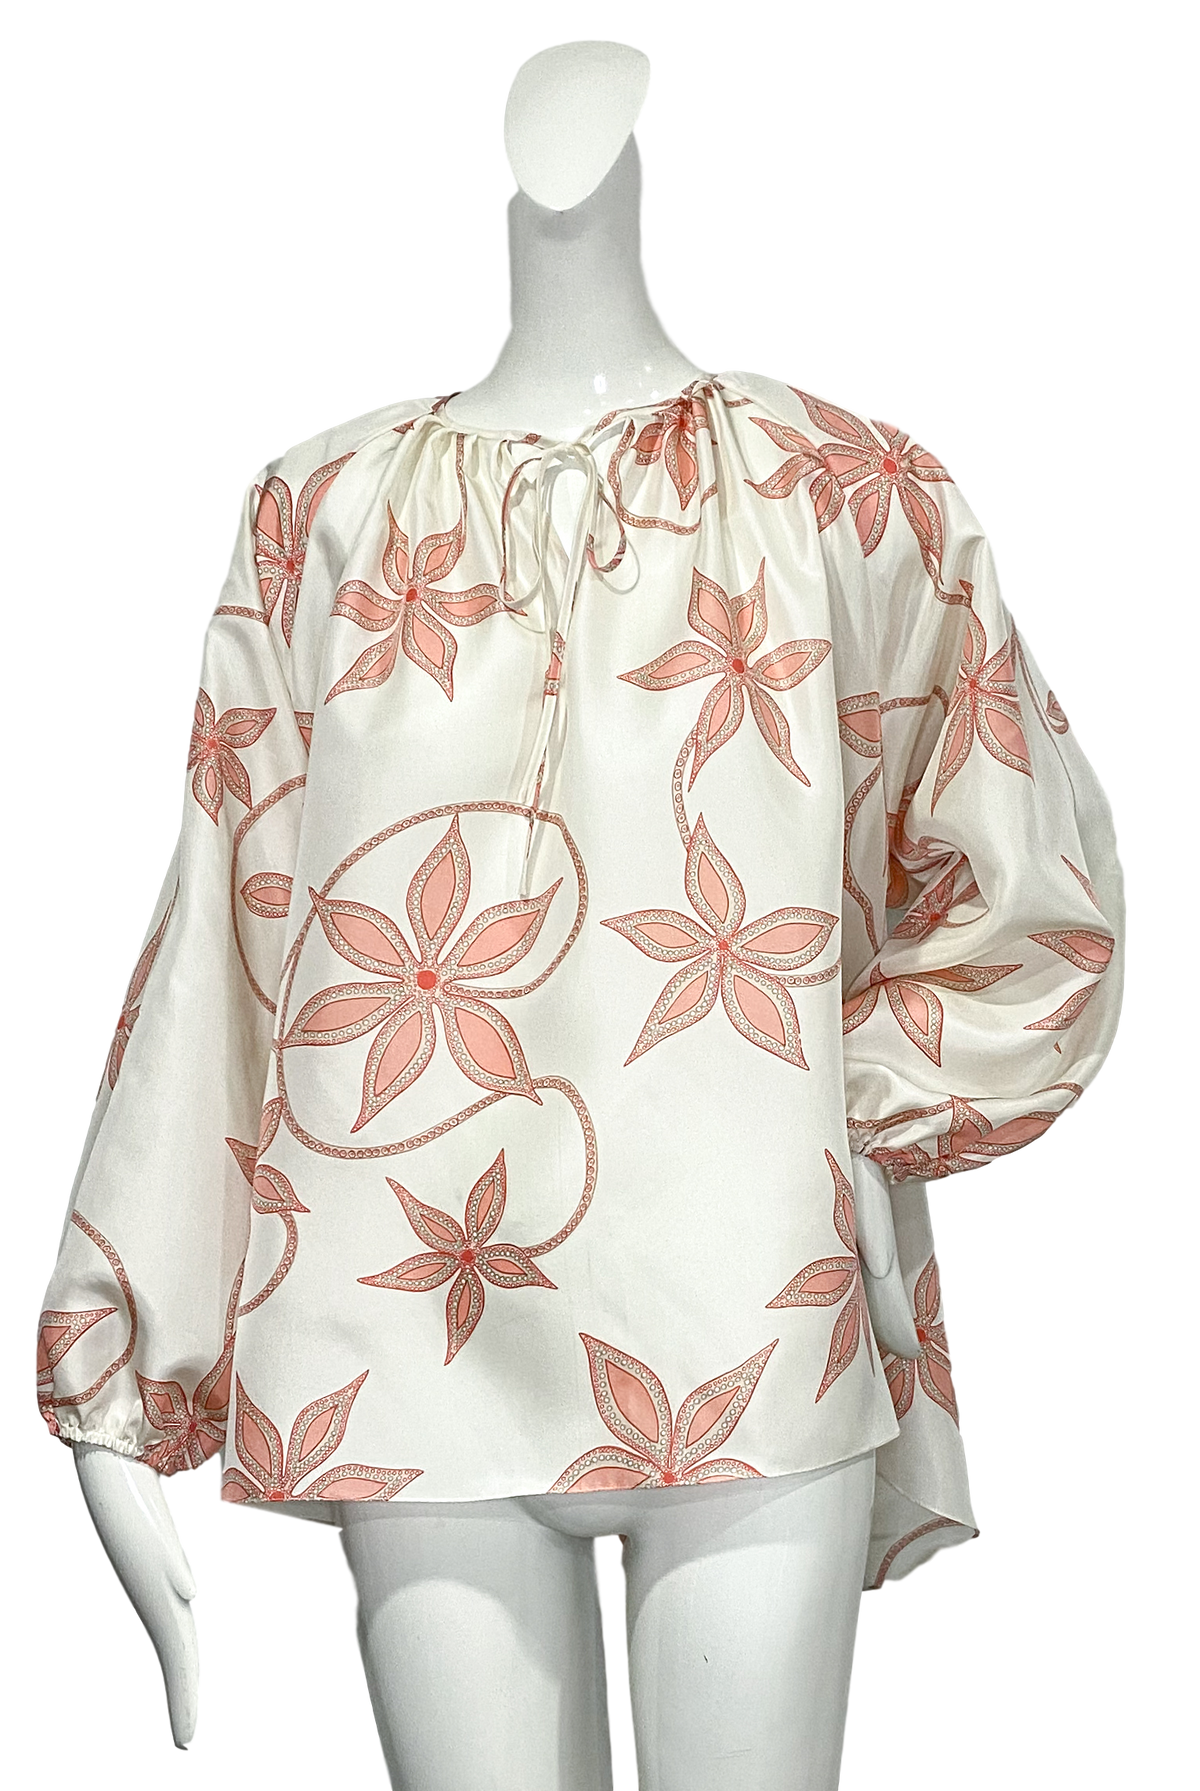 Chimayo Top |  Silk Floral